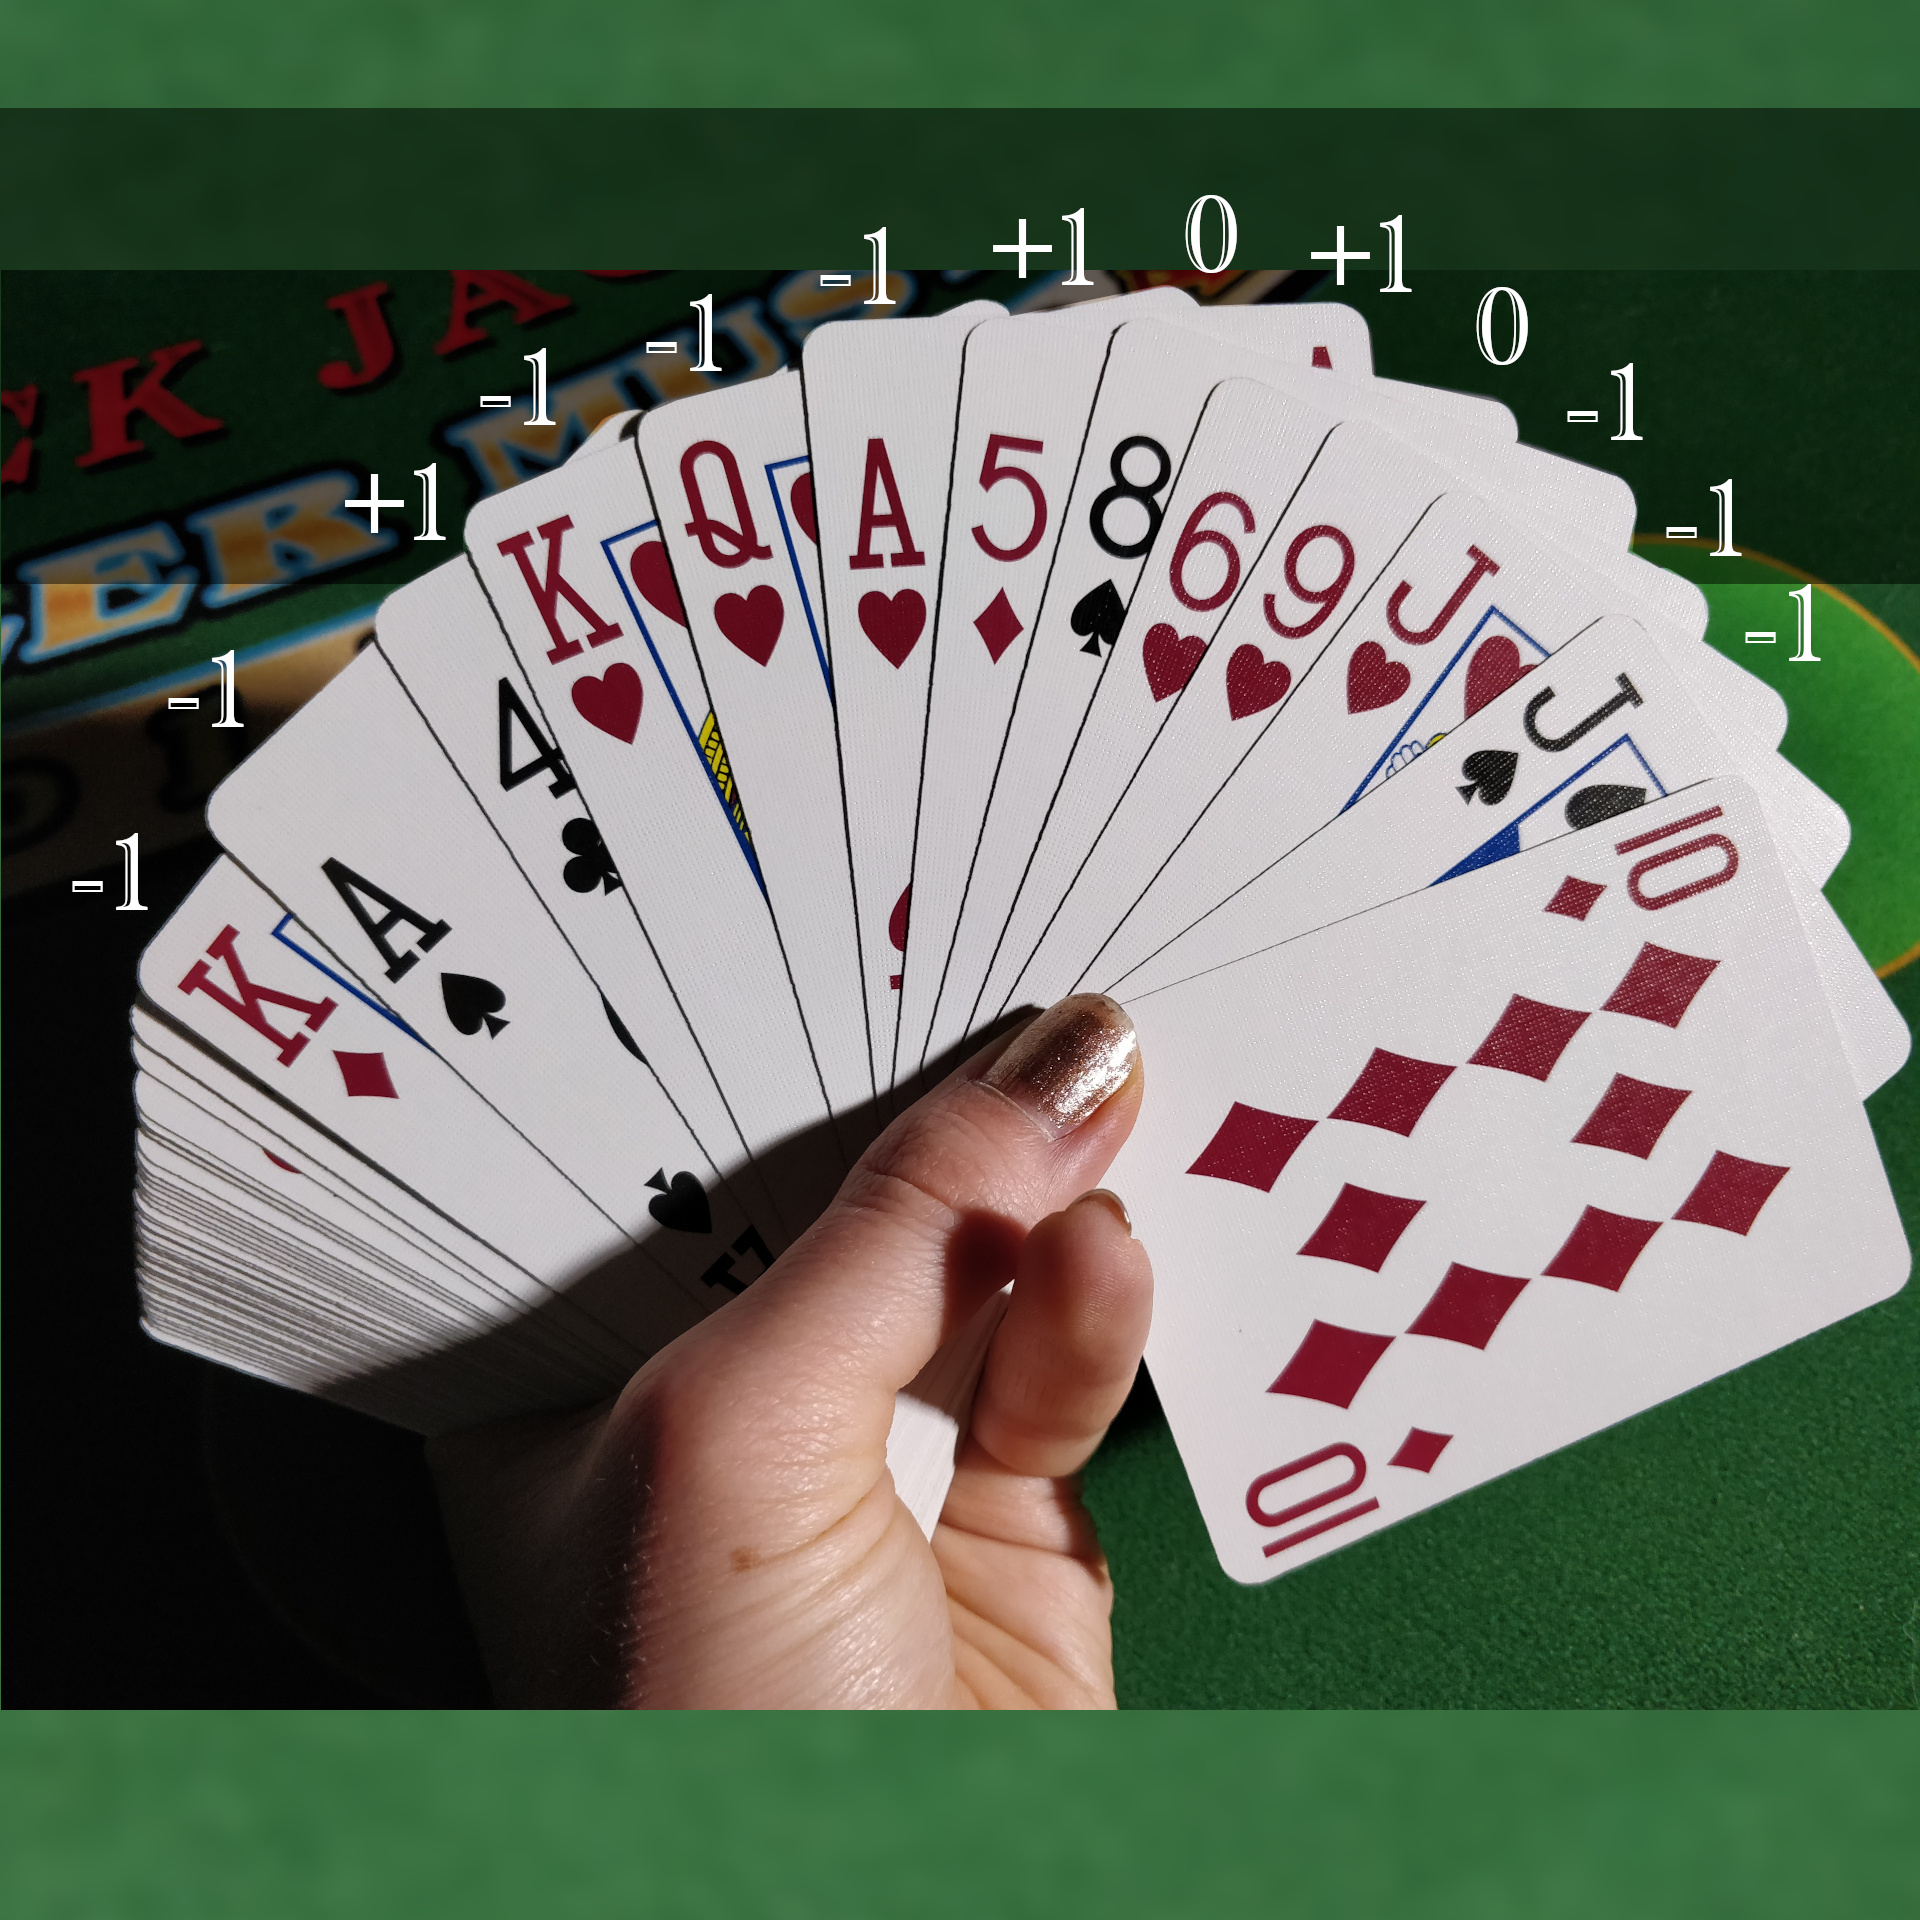 Value of Cards in Card Counting